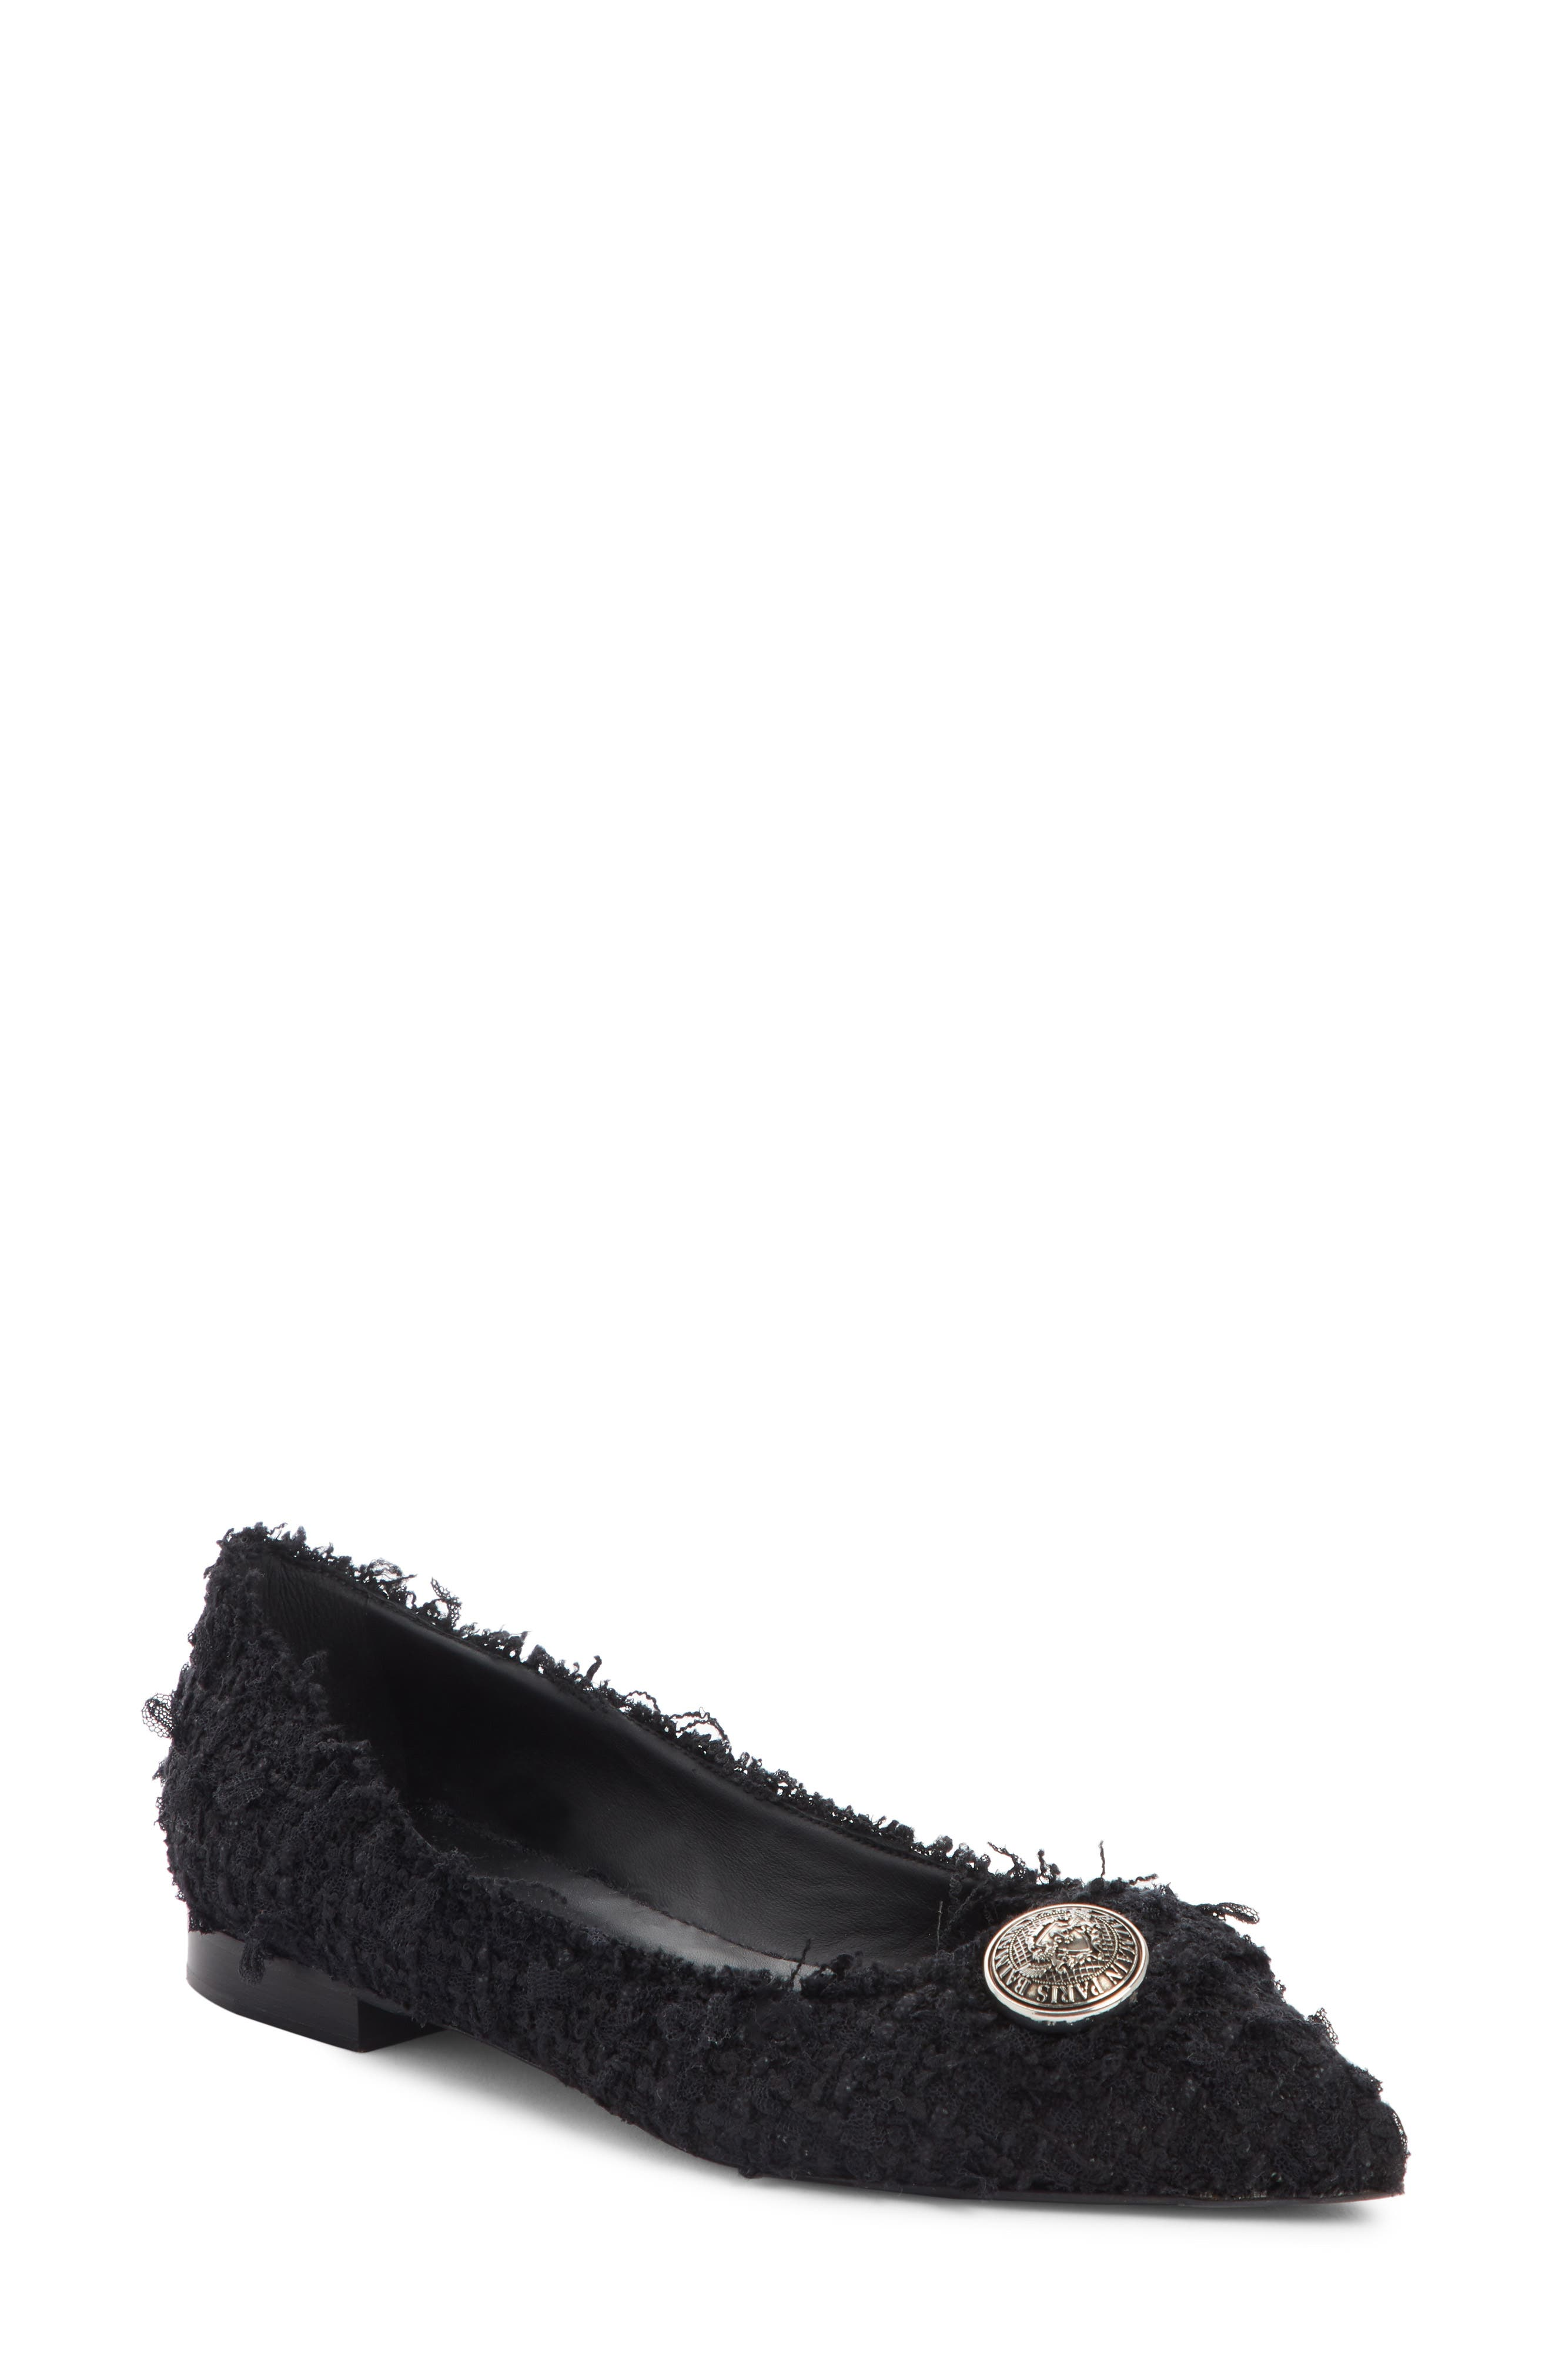 Balmain Jolie Pointy Toe Flat, Black